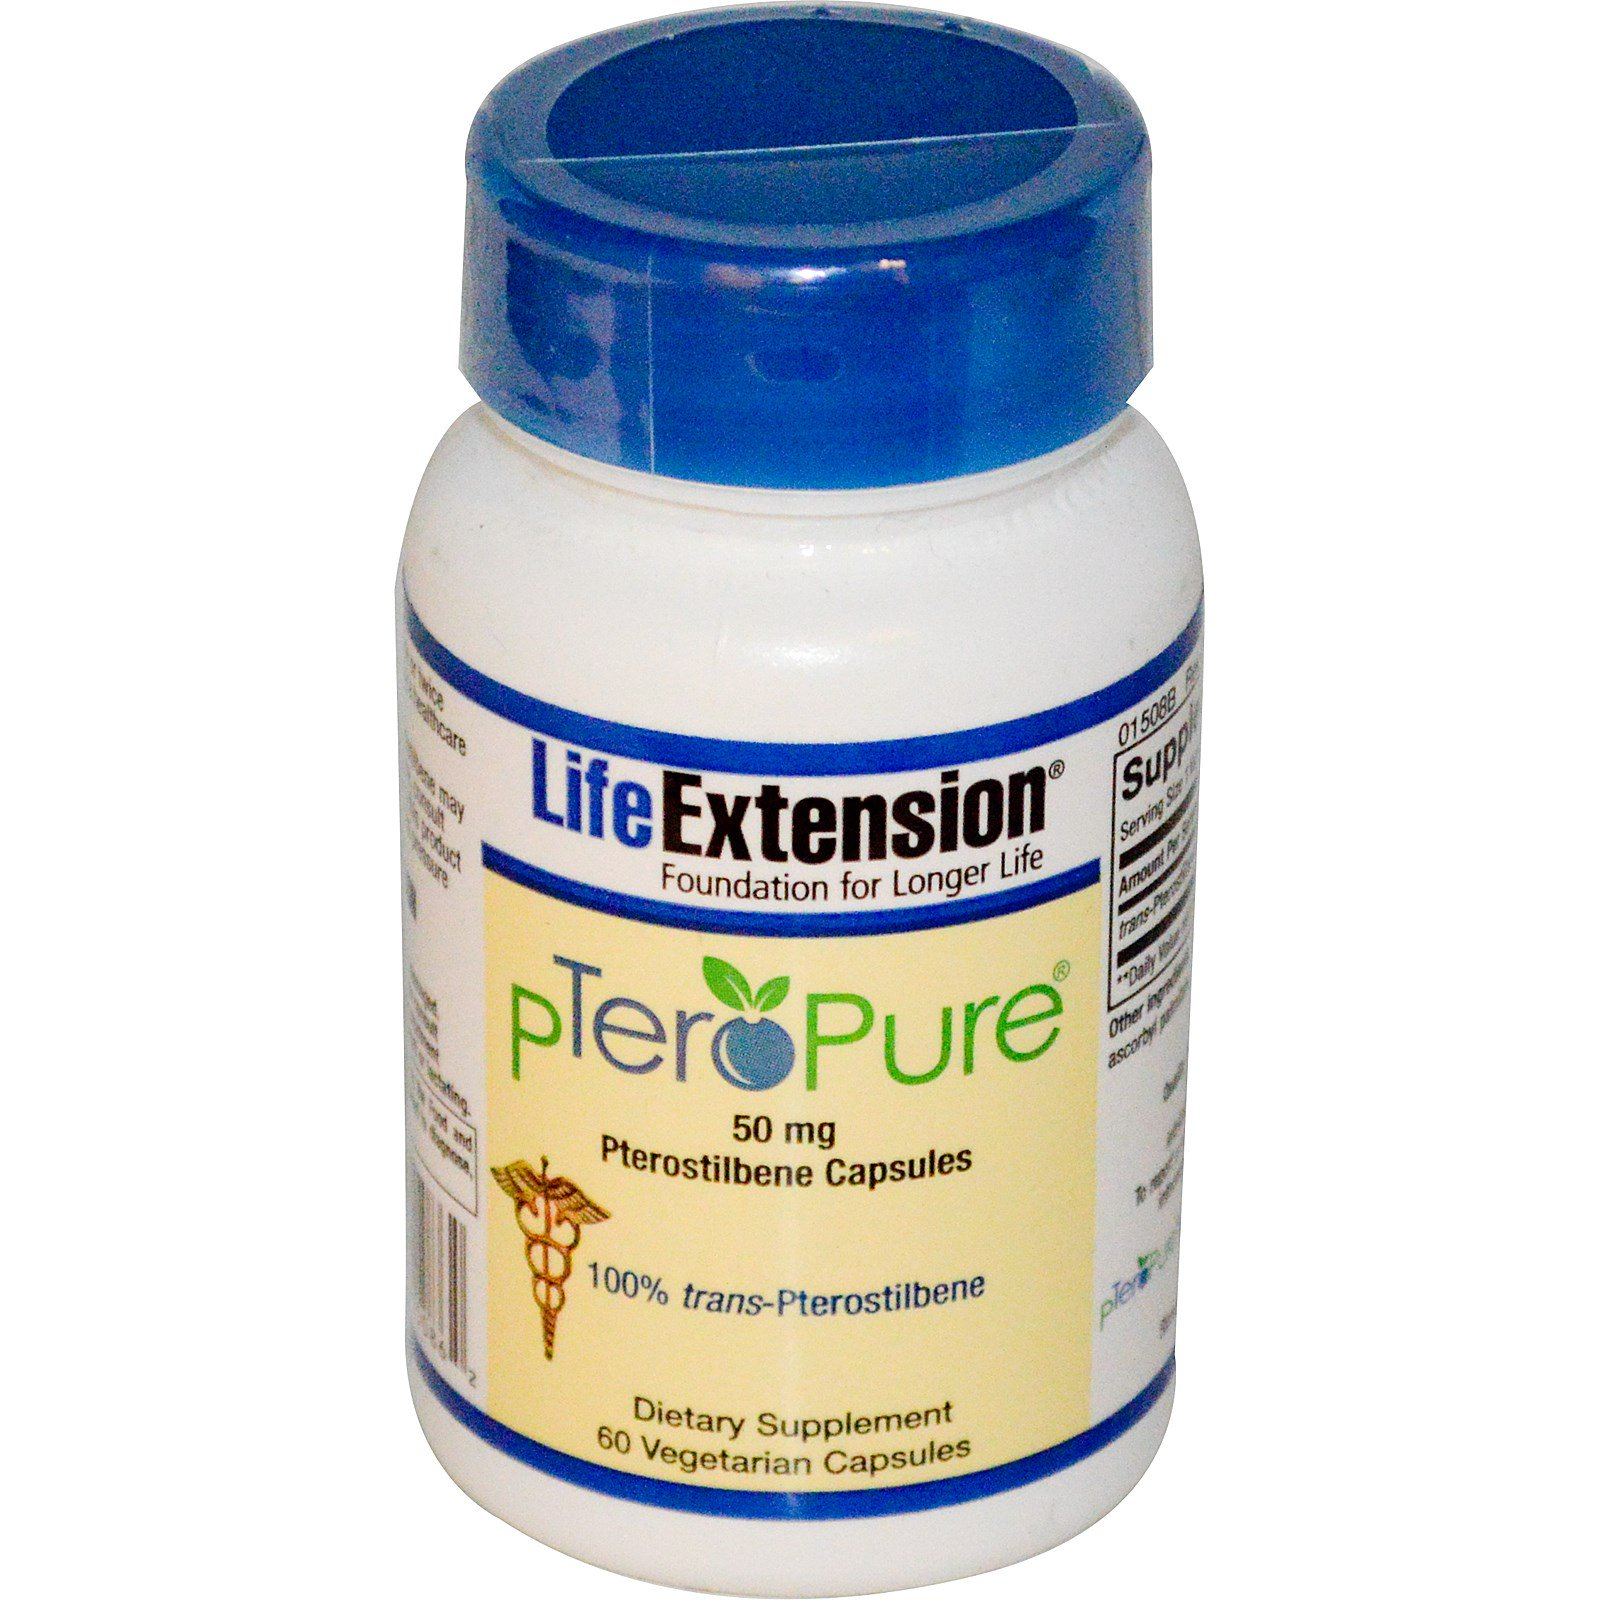 Life Extension, pTeroPure, птеростильбен, 50 мг, 60 капсул